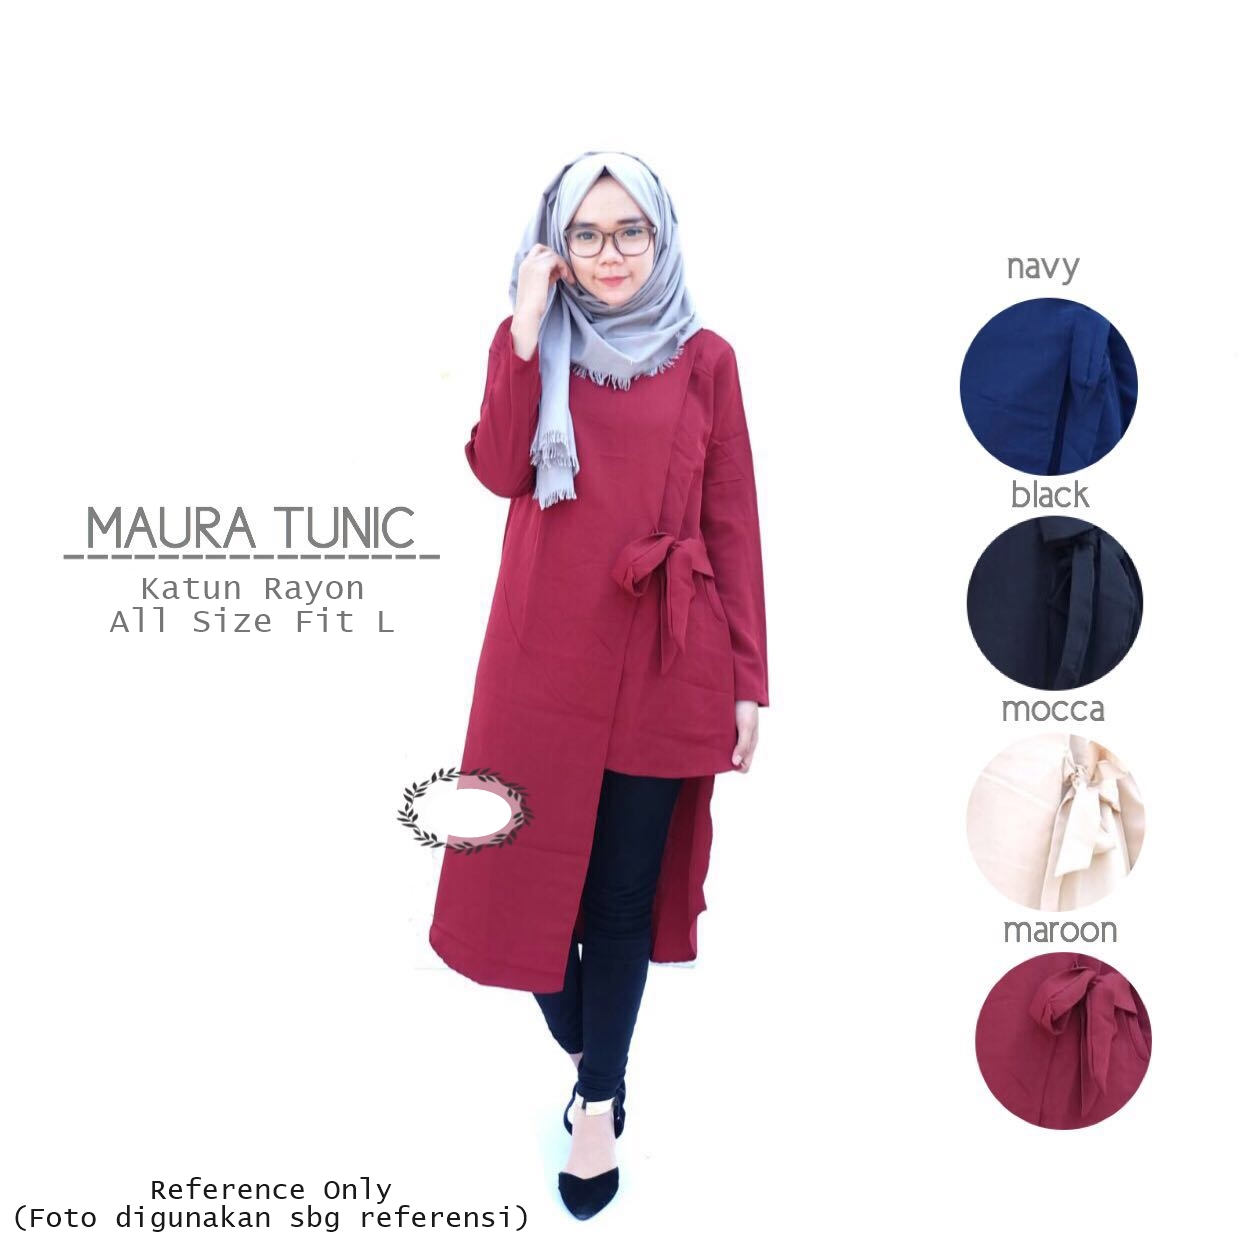 Baju Atasan Muslim Blouse Tunic Kemeja Long Shirt Tunik Best Red Sj0015 Jual Maura Top Blus Kaos Murah Sheloveshopp